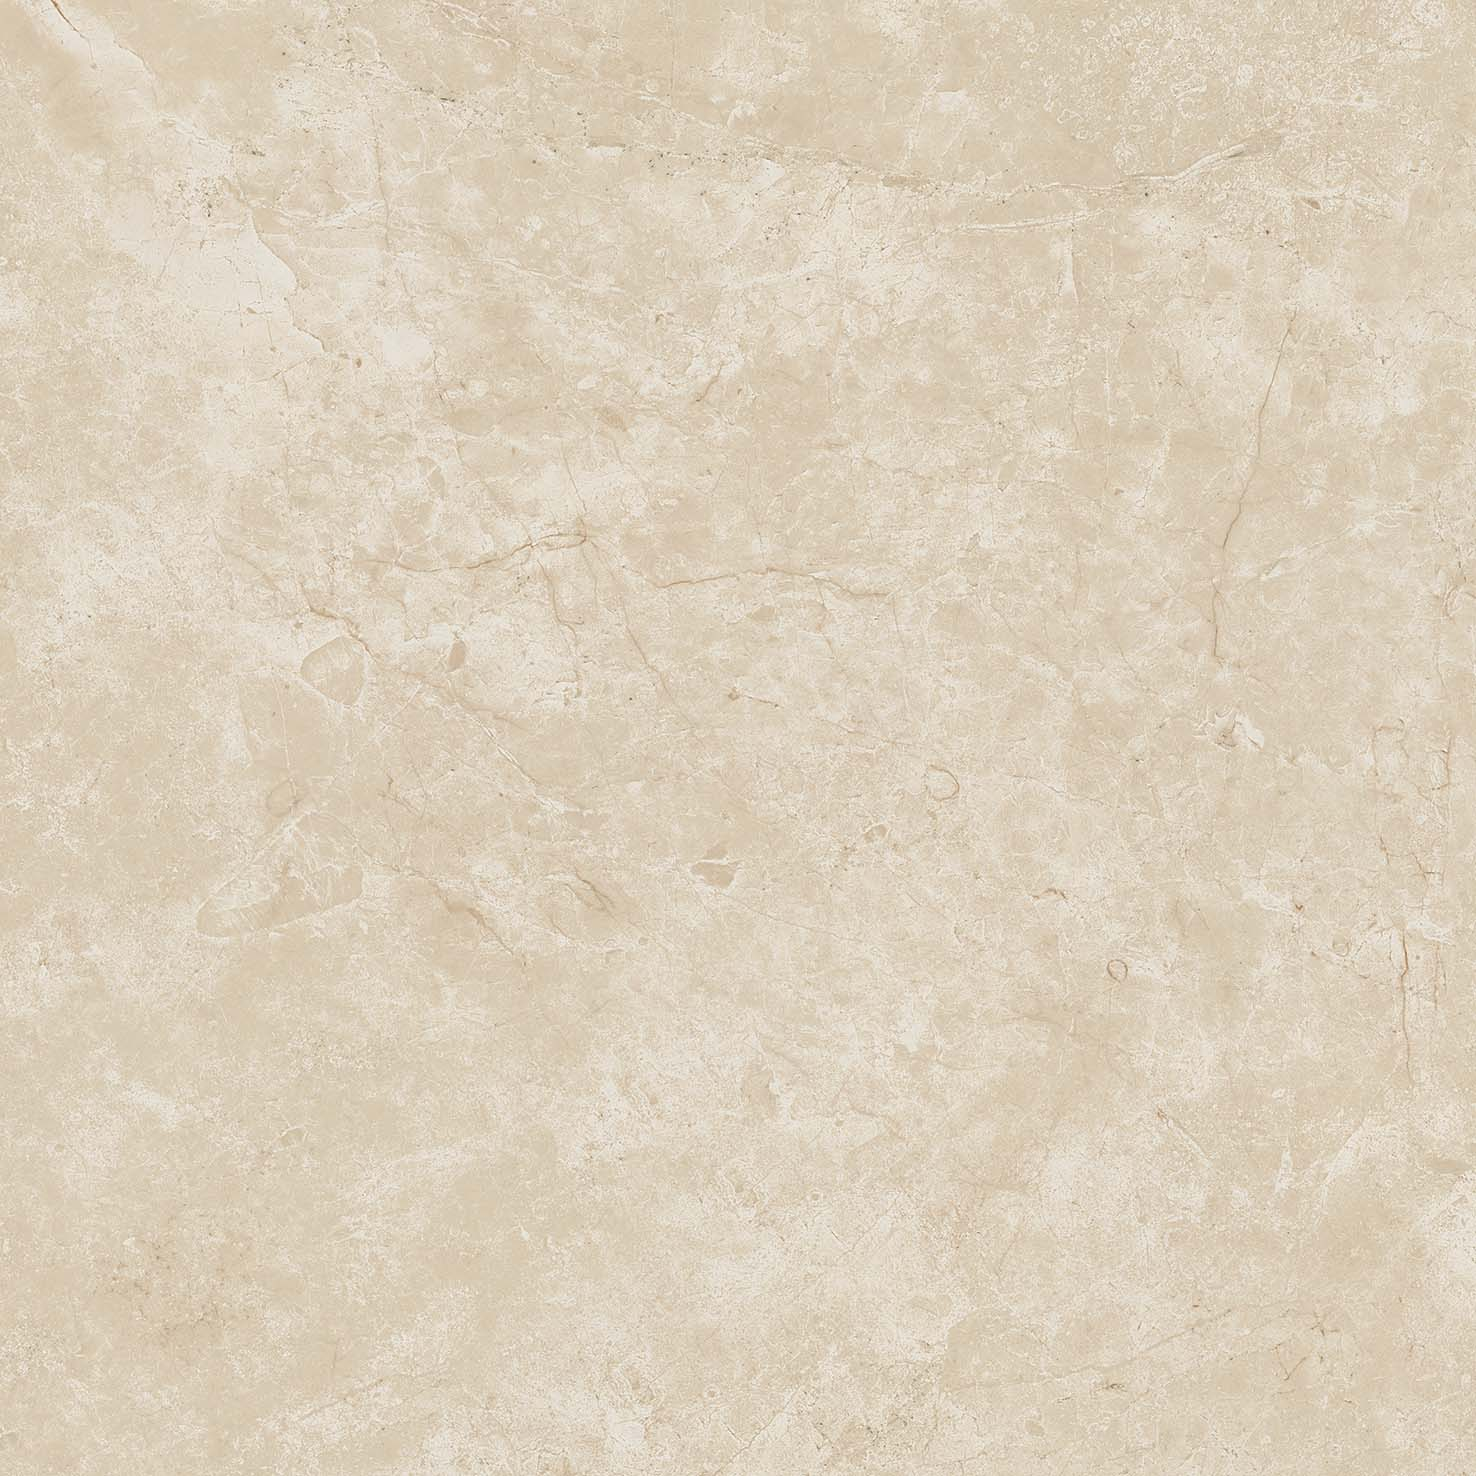 Marvel Stone Cream Prestige 600x600mm Matte Finish Floor Tile (1.08m2 box)